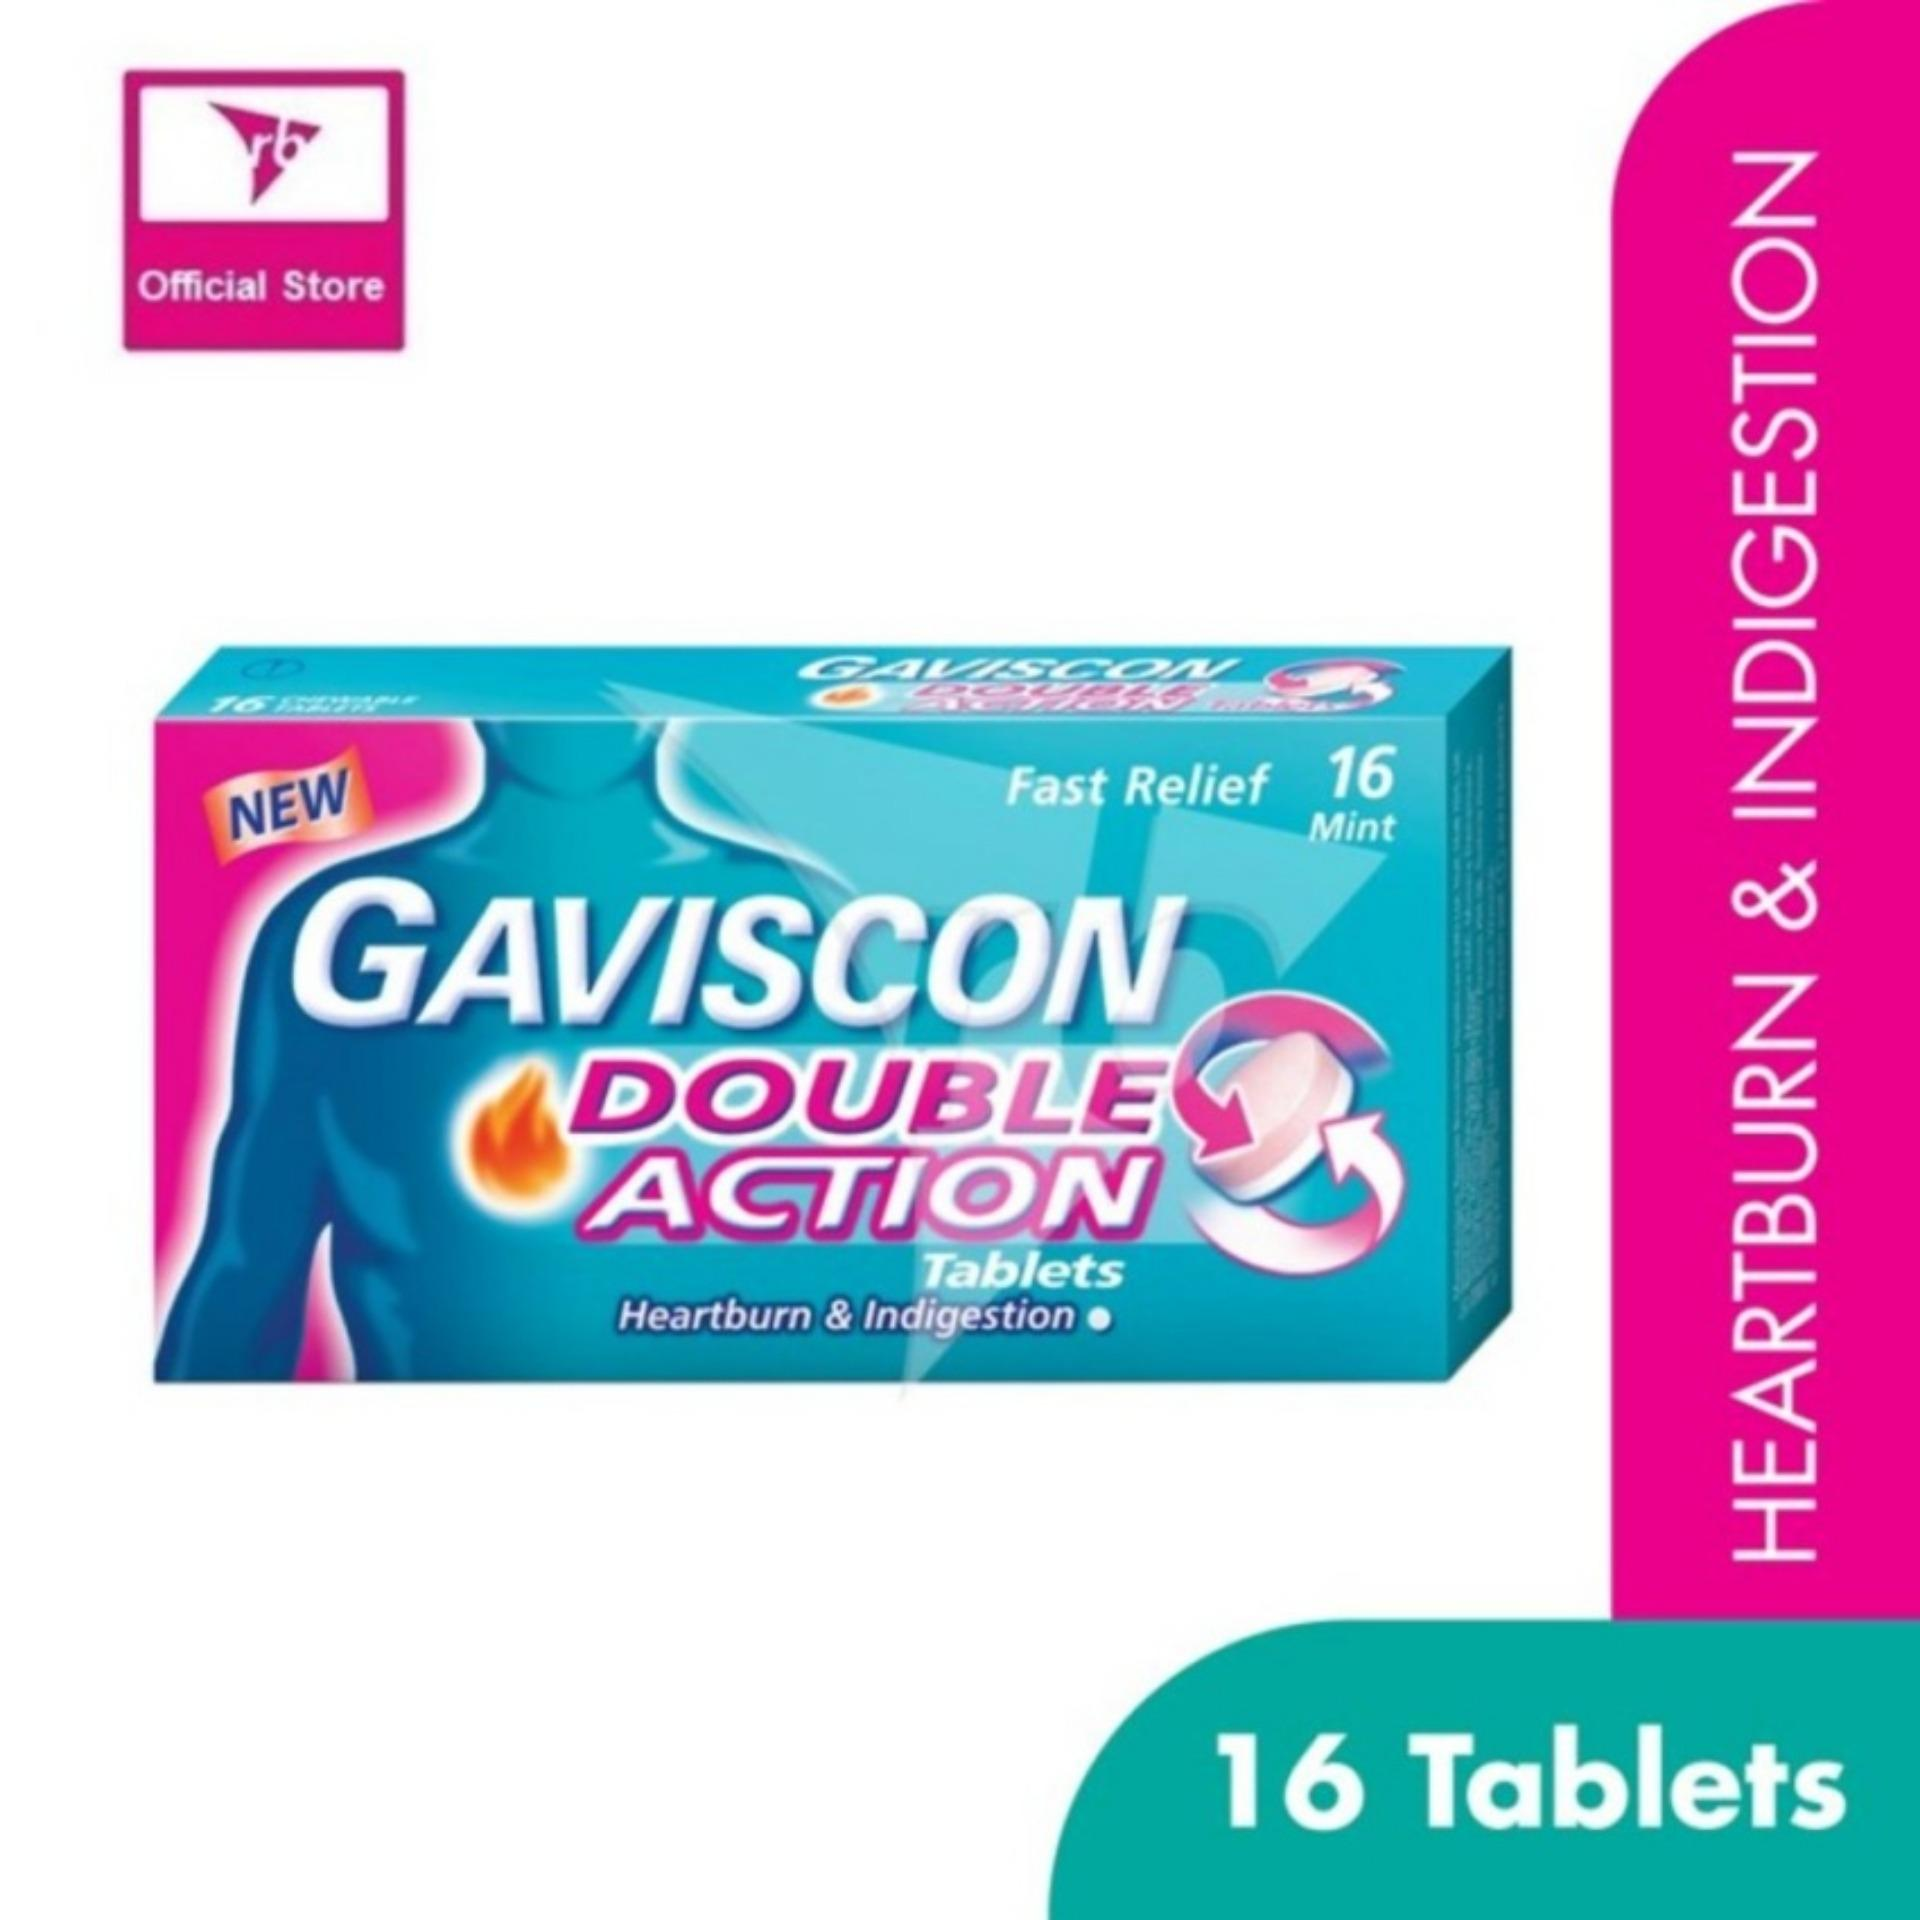 Buy Gaviscon Double Action Chewable Tablets 250Mg 16S For Heartburn And Indigestion